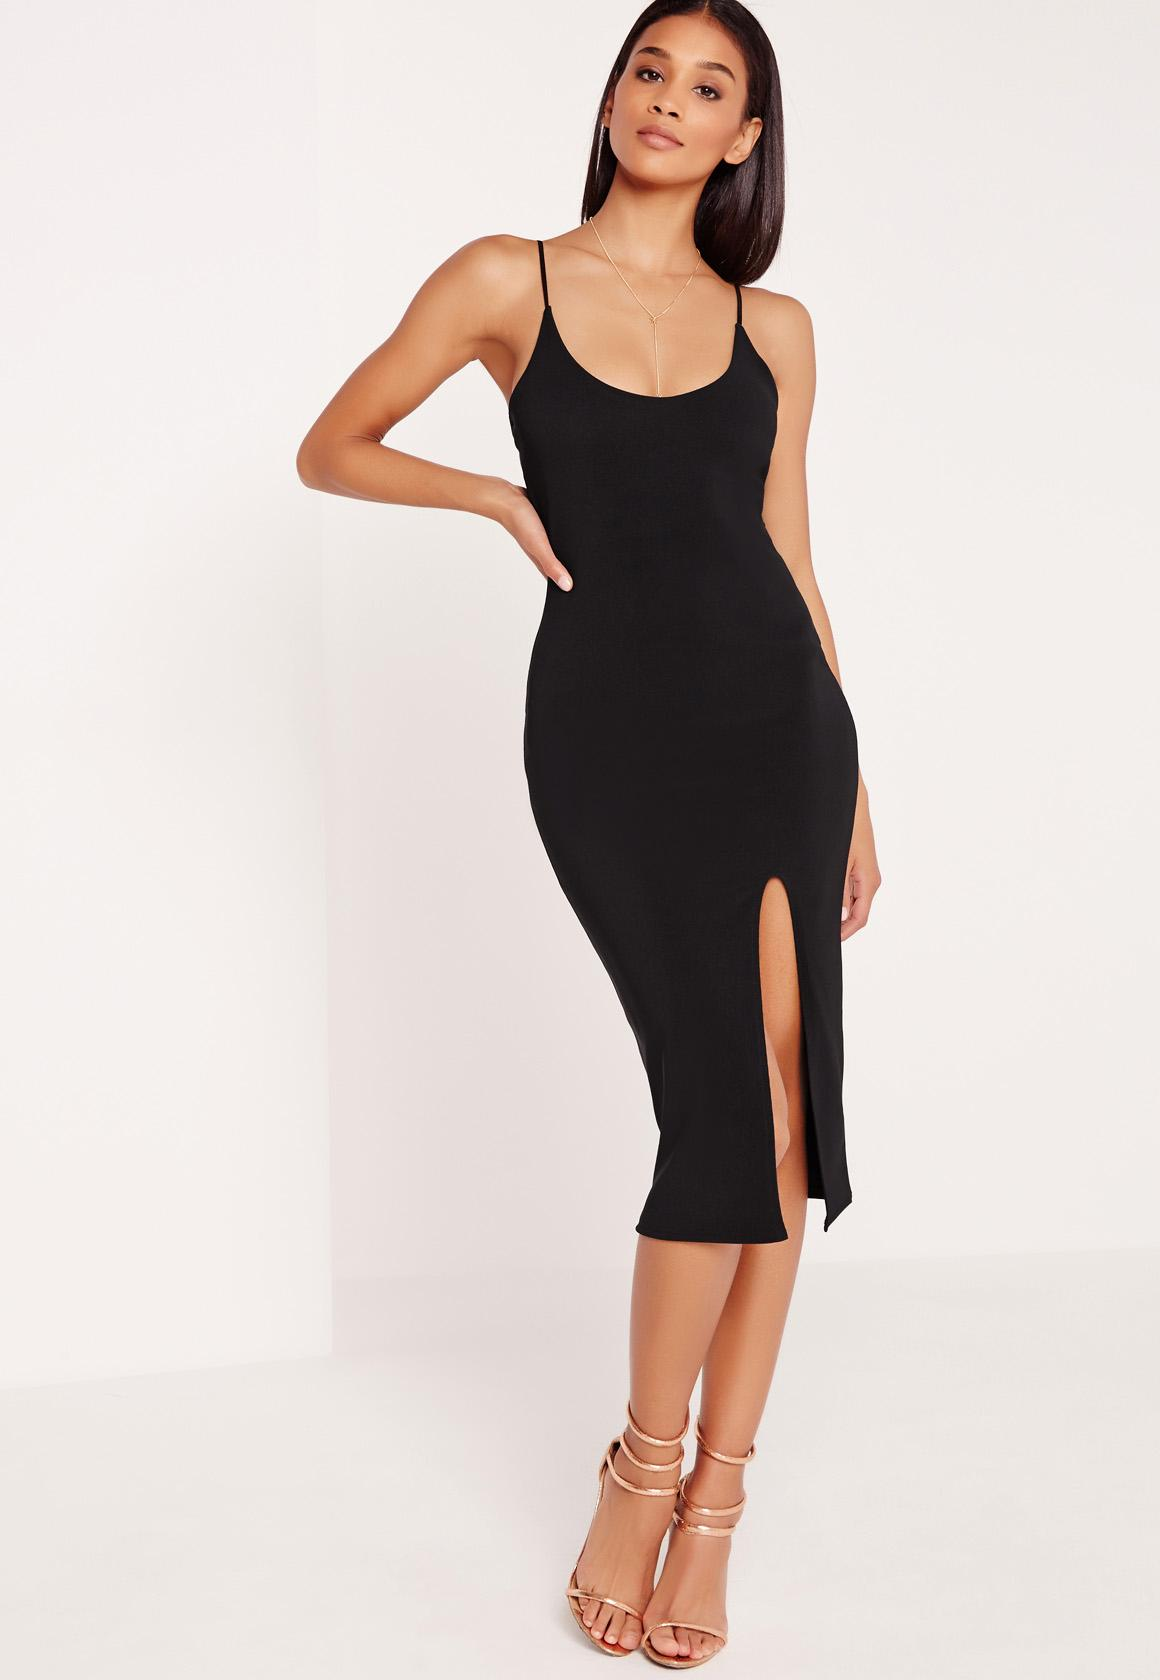 Missguided Strappy Scoop Neck Midi Dress Footlocker Pictures For Sale Discount Exclusive Outlet Wide Range Of Sale Fast Delivery Explore aBllEE